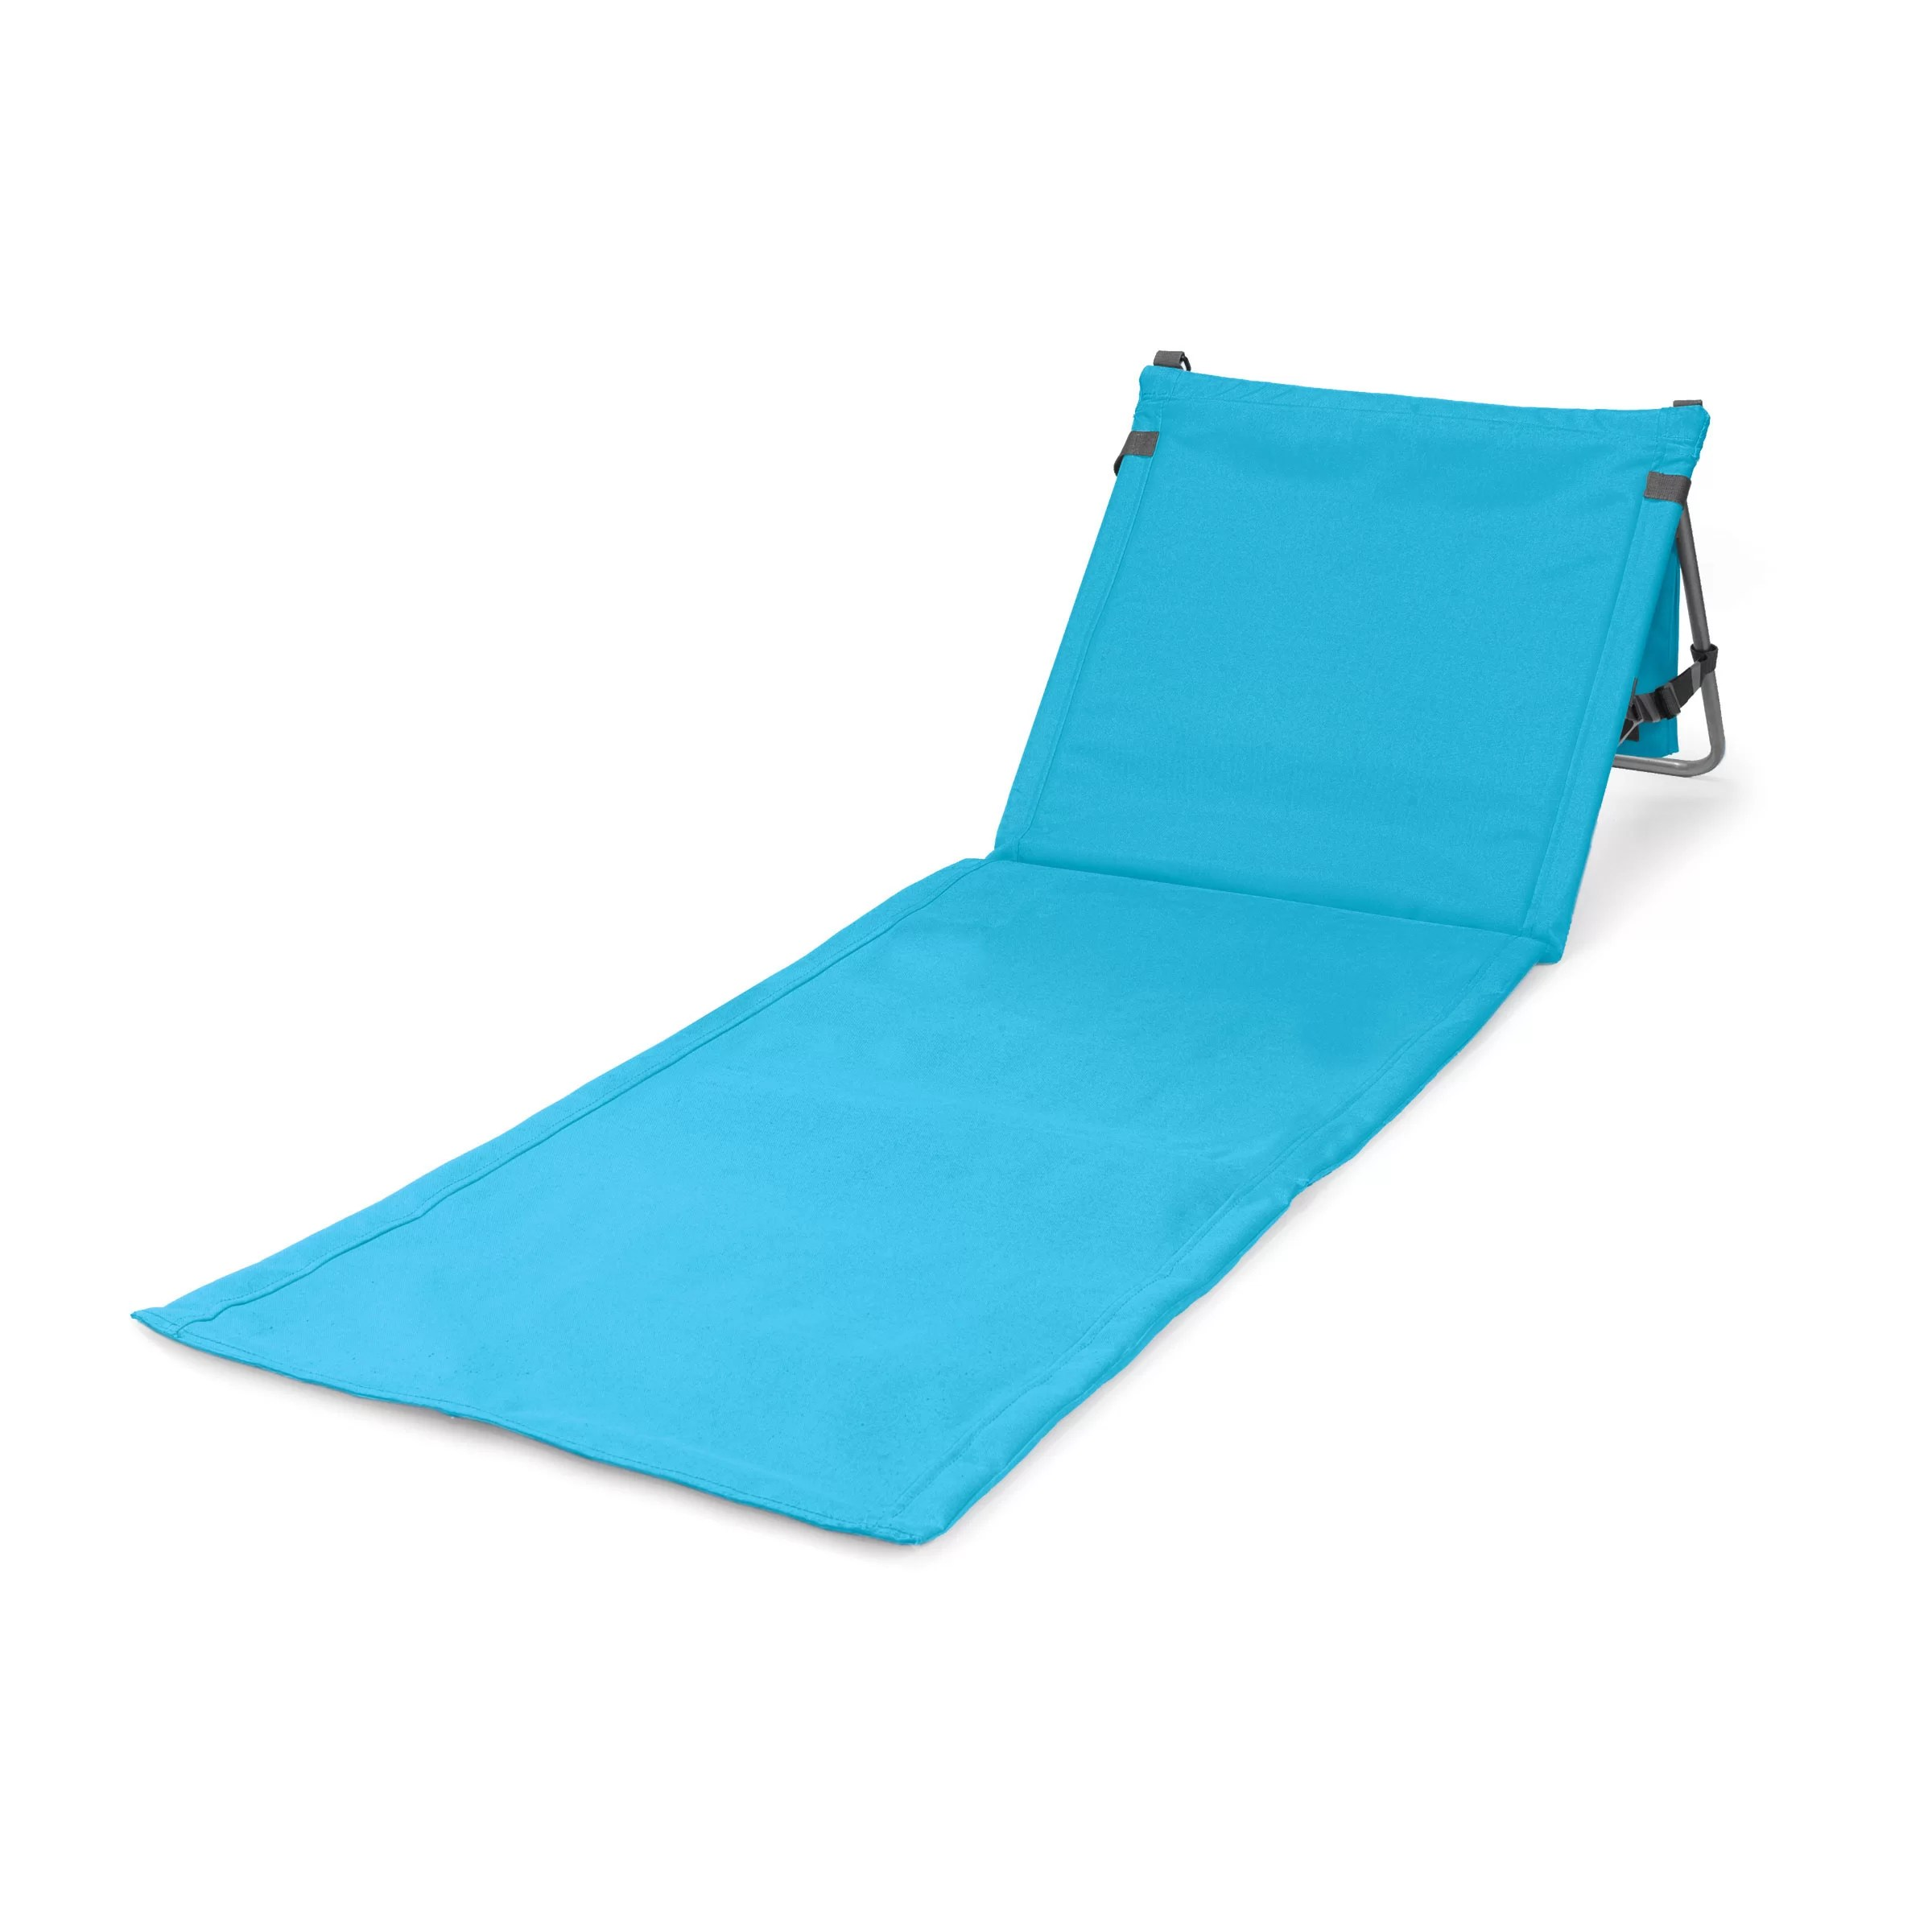 Portable Beach Chair Auriville Mat Folding Beach Chair